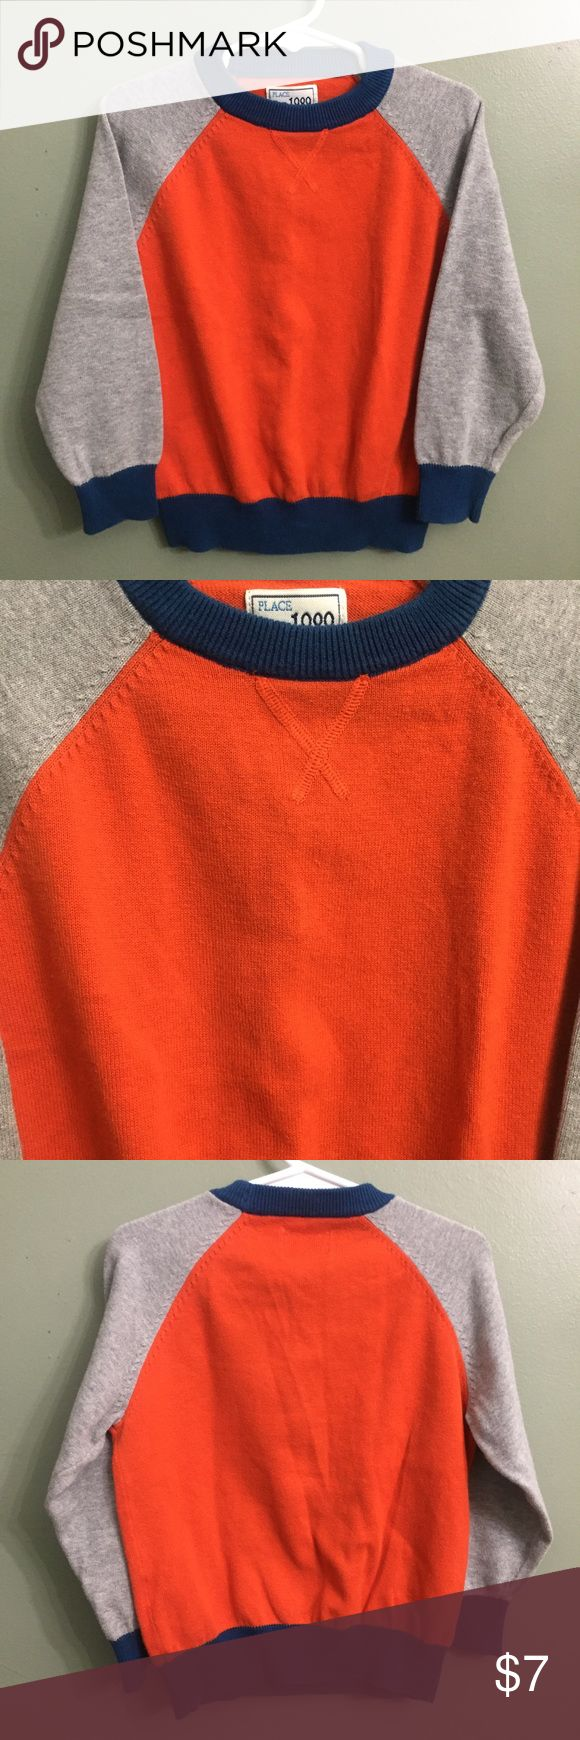 "B2G1EUC Children's Place Orange Sweater, XS 4 EUC Children's Place Orange Sweater, XS 4This item is eligible for the ""Buy 2 Get 1 Free"" promotion in my closet with a minimum purchase of $15. Free items are to be of equal or lesser in value than the other items. Children's Place Shirts & Tops Sweaters"